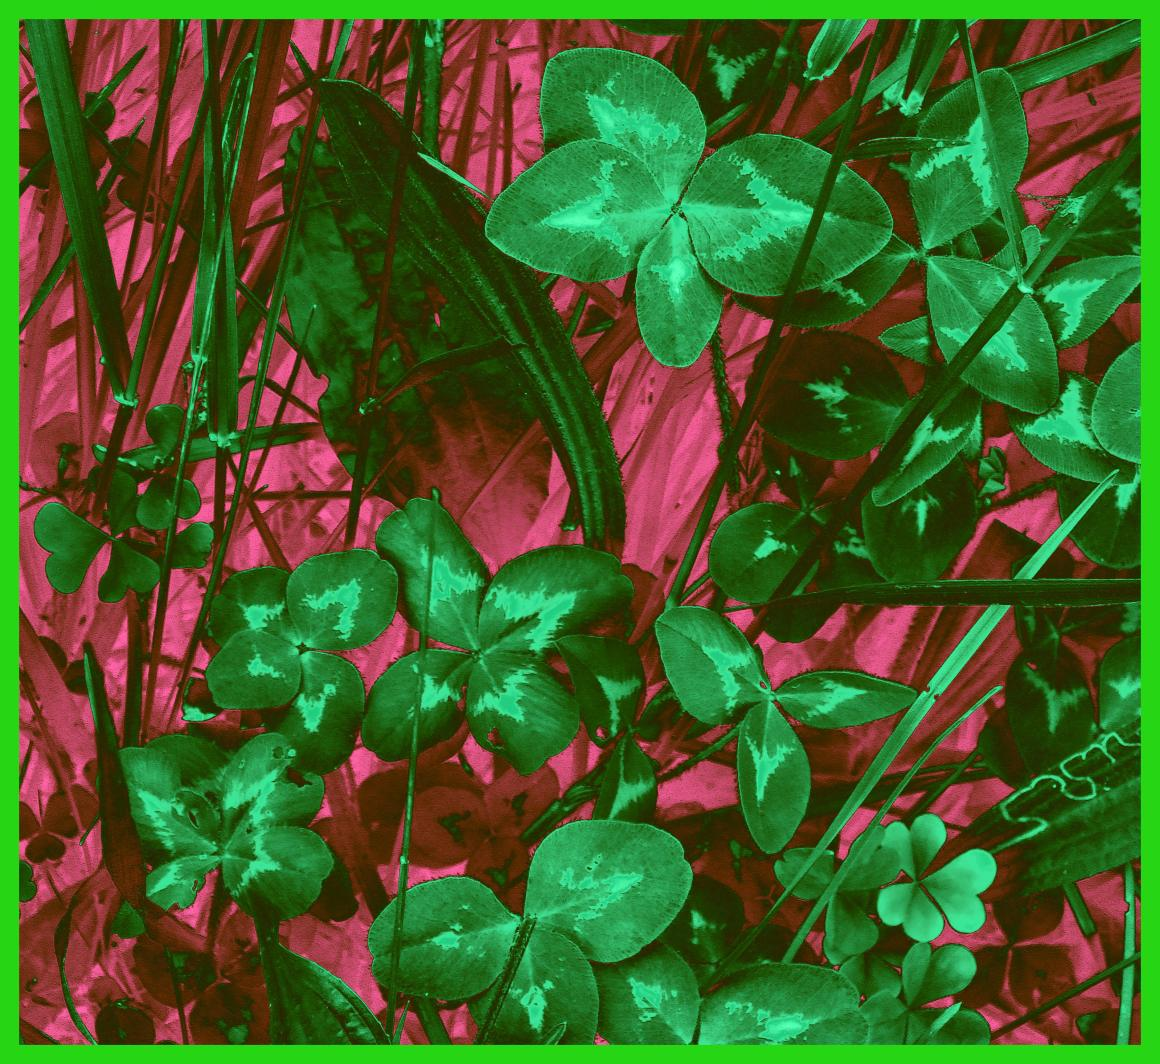 Be a 4-leaf clover (2).  Photo by Thomas Peace c. 2015